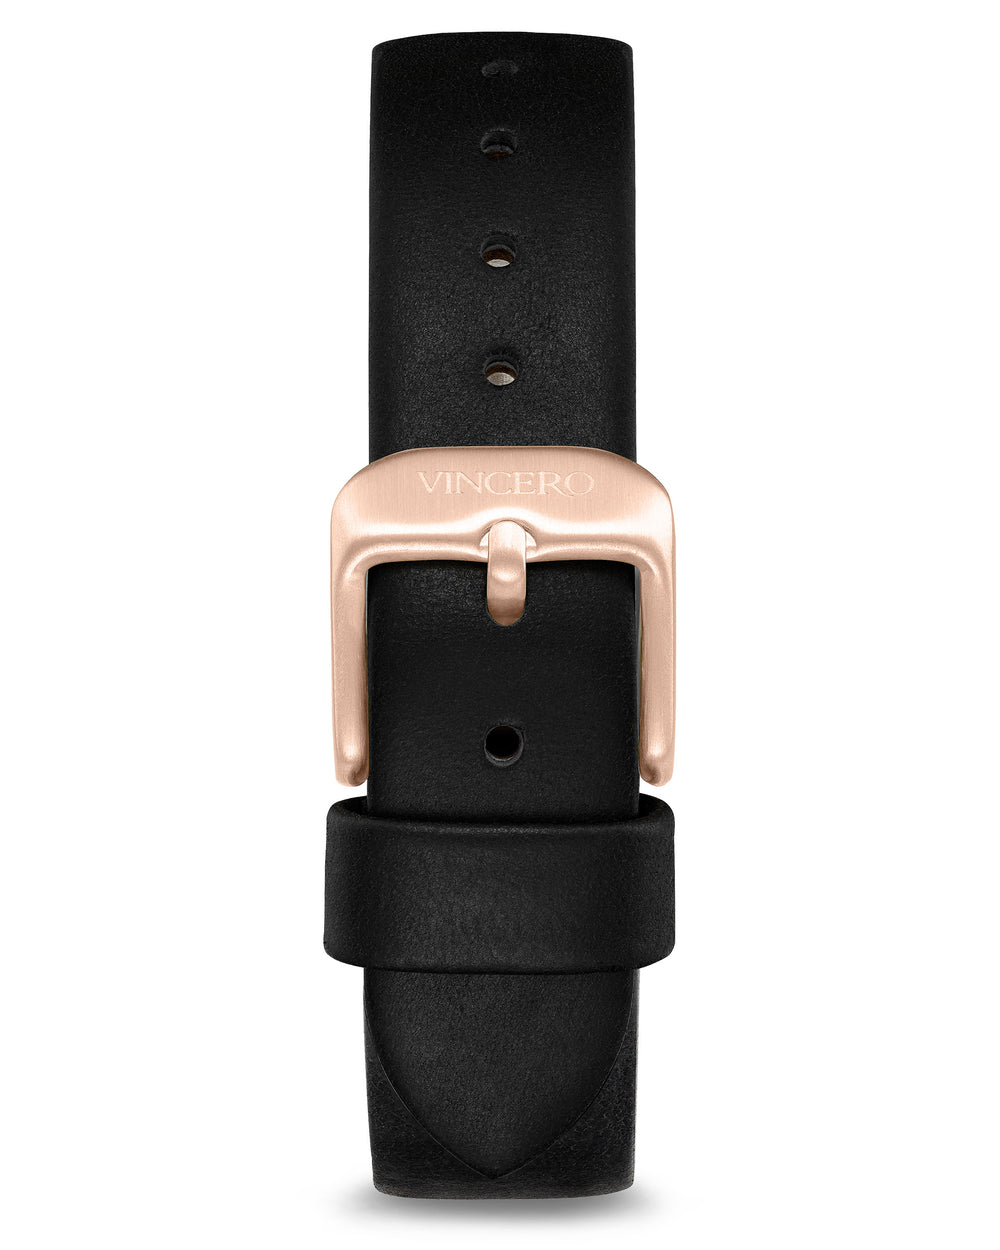 Women's Luxury Jet Black Italian Natural Leather Watch Band Strap Rose Gold Clasp